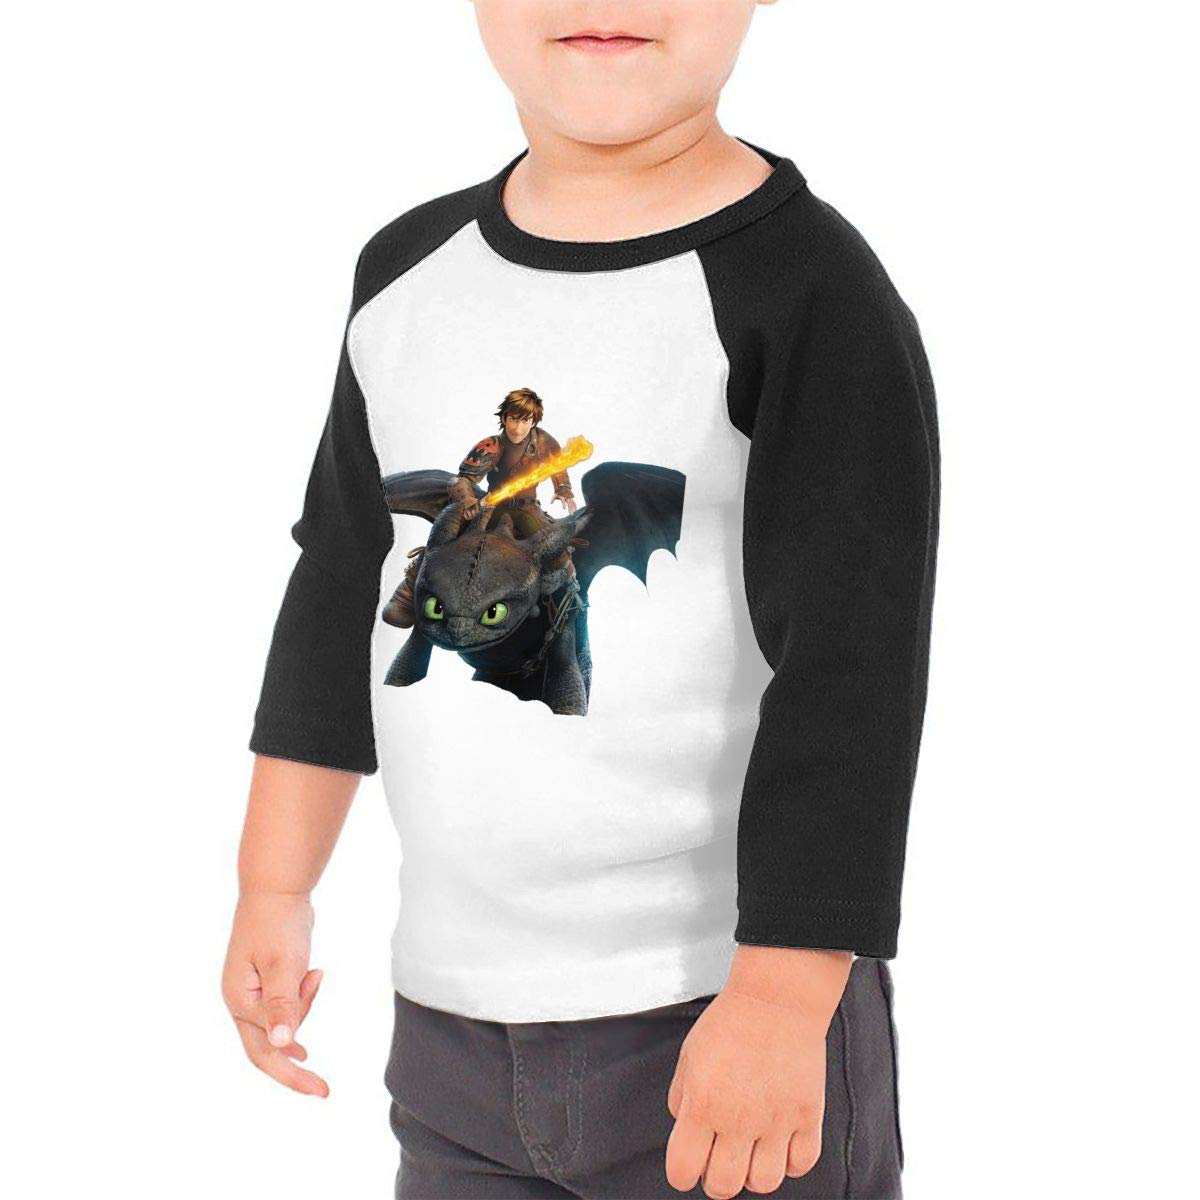 BowersJ How to Train Your Dragon Kids 3//4 Sleeve Raglan Baseball T Shirt Girls /& Boys Black